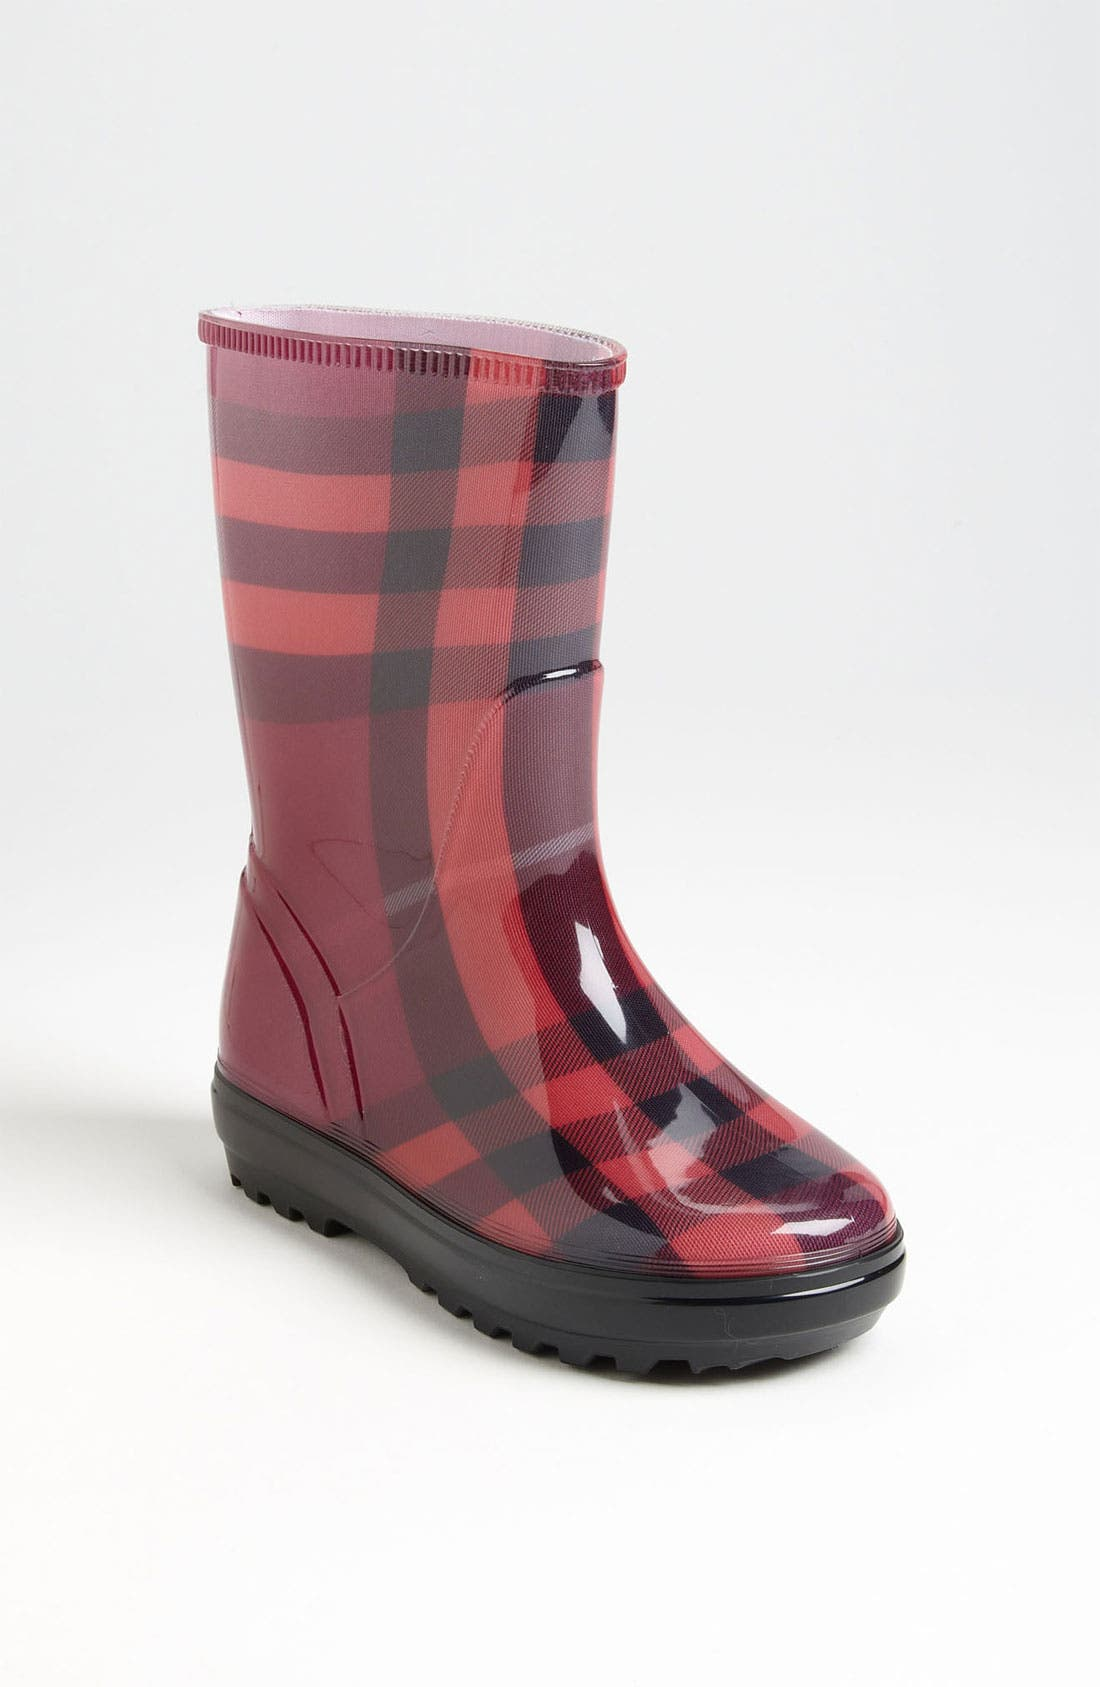 Alternate Image 1 Selected - Burberry 'Frogrise' Boot (Walker, Toddler, Little Kid & Big Kid)